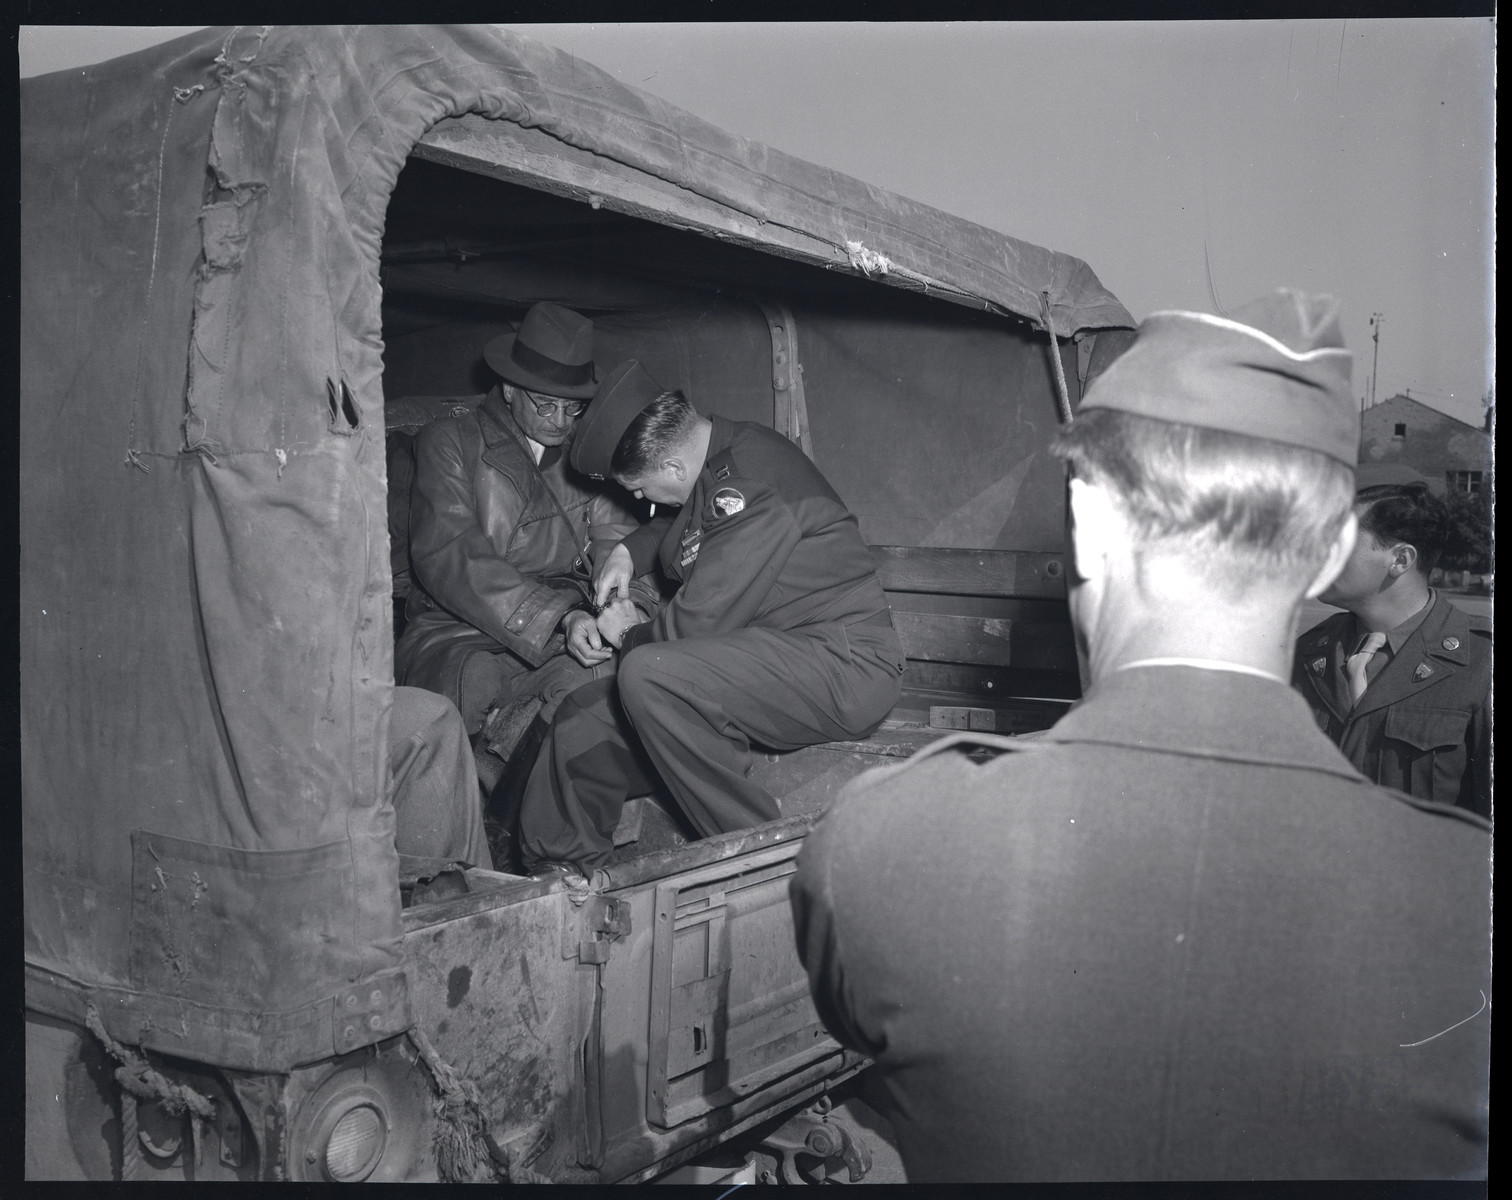 Kurt von Bursgsdorff, former governor of Krakow, is  transported by American soldiers in shackles.